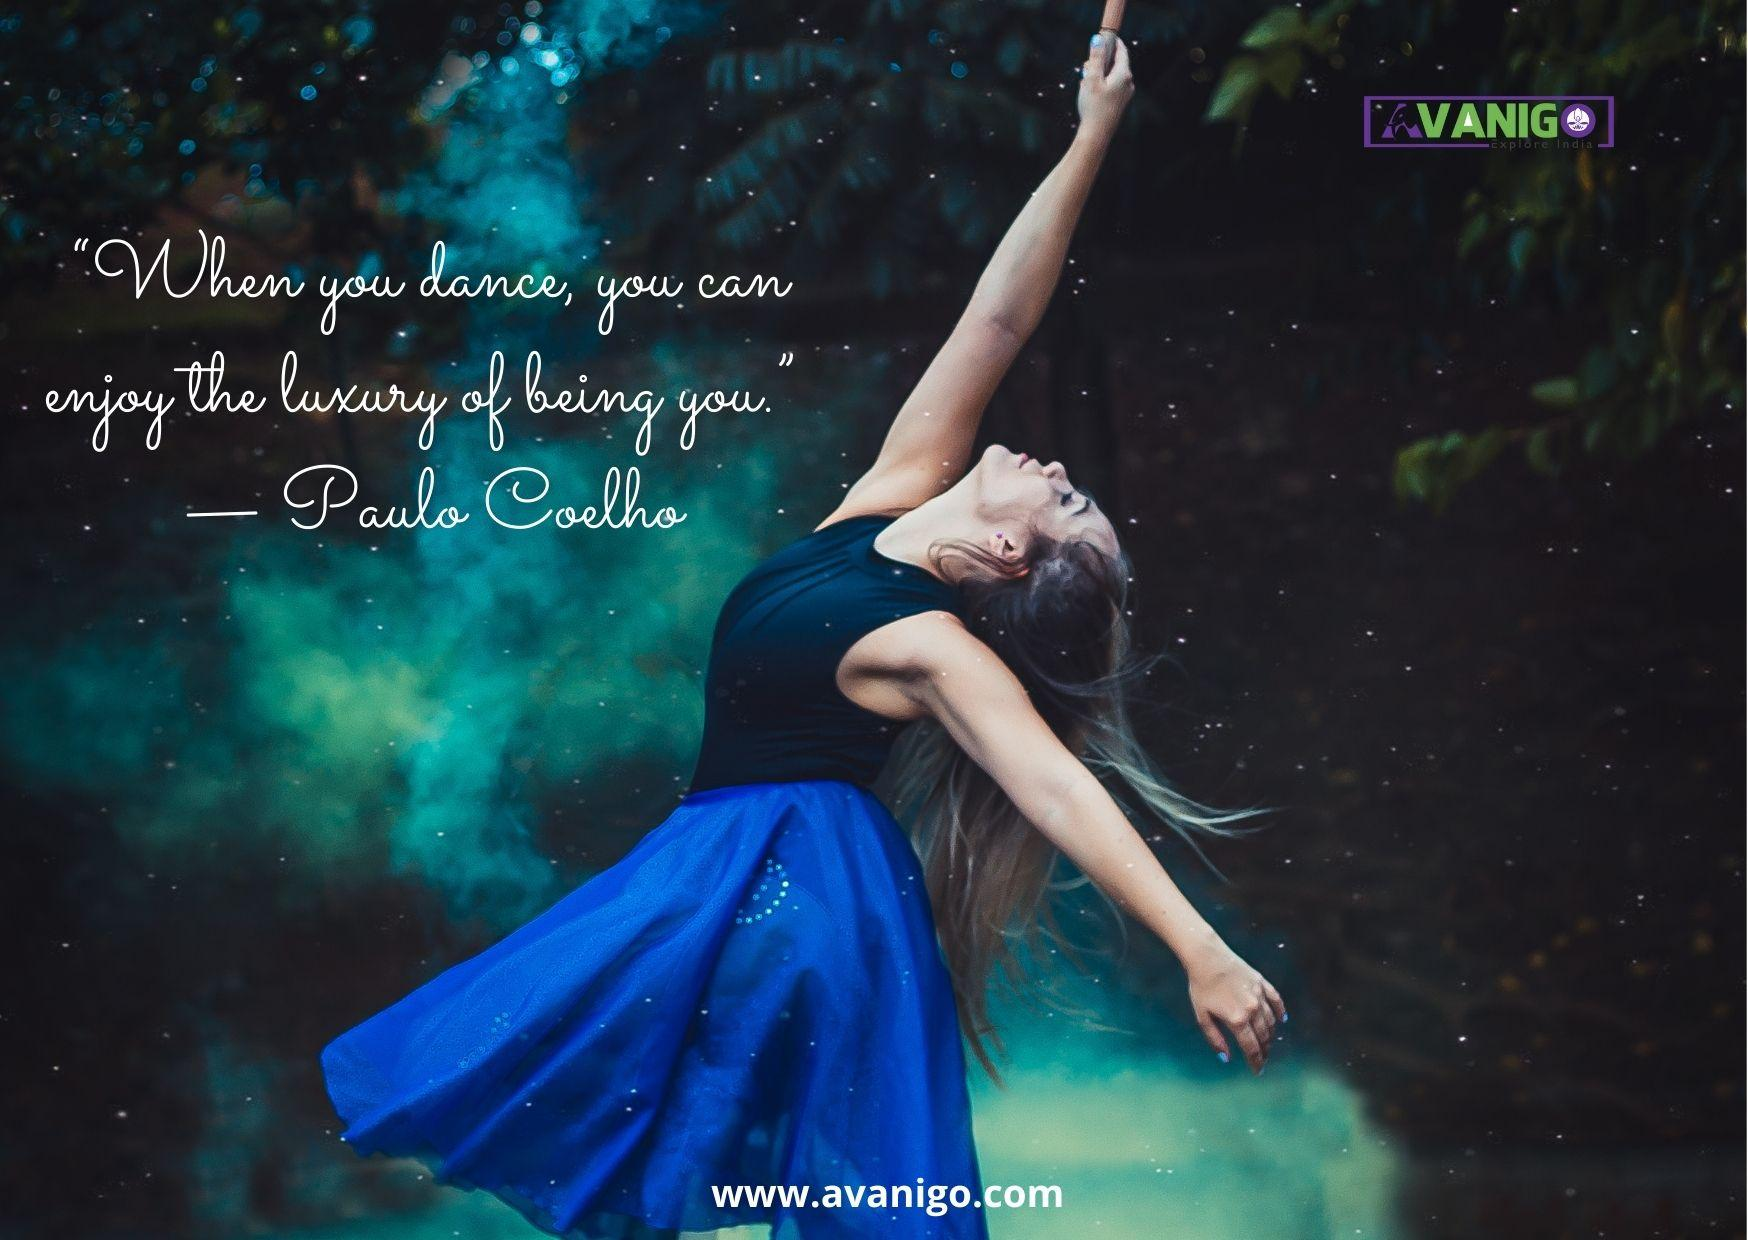 When you dance, you can enjoy the luxury of being you.